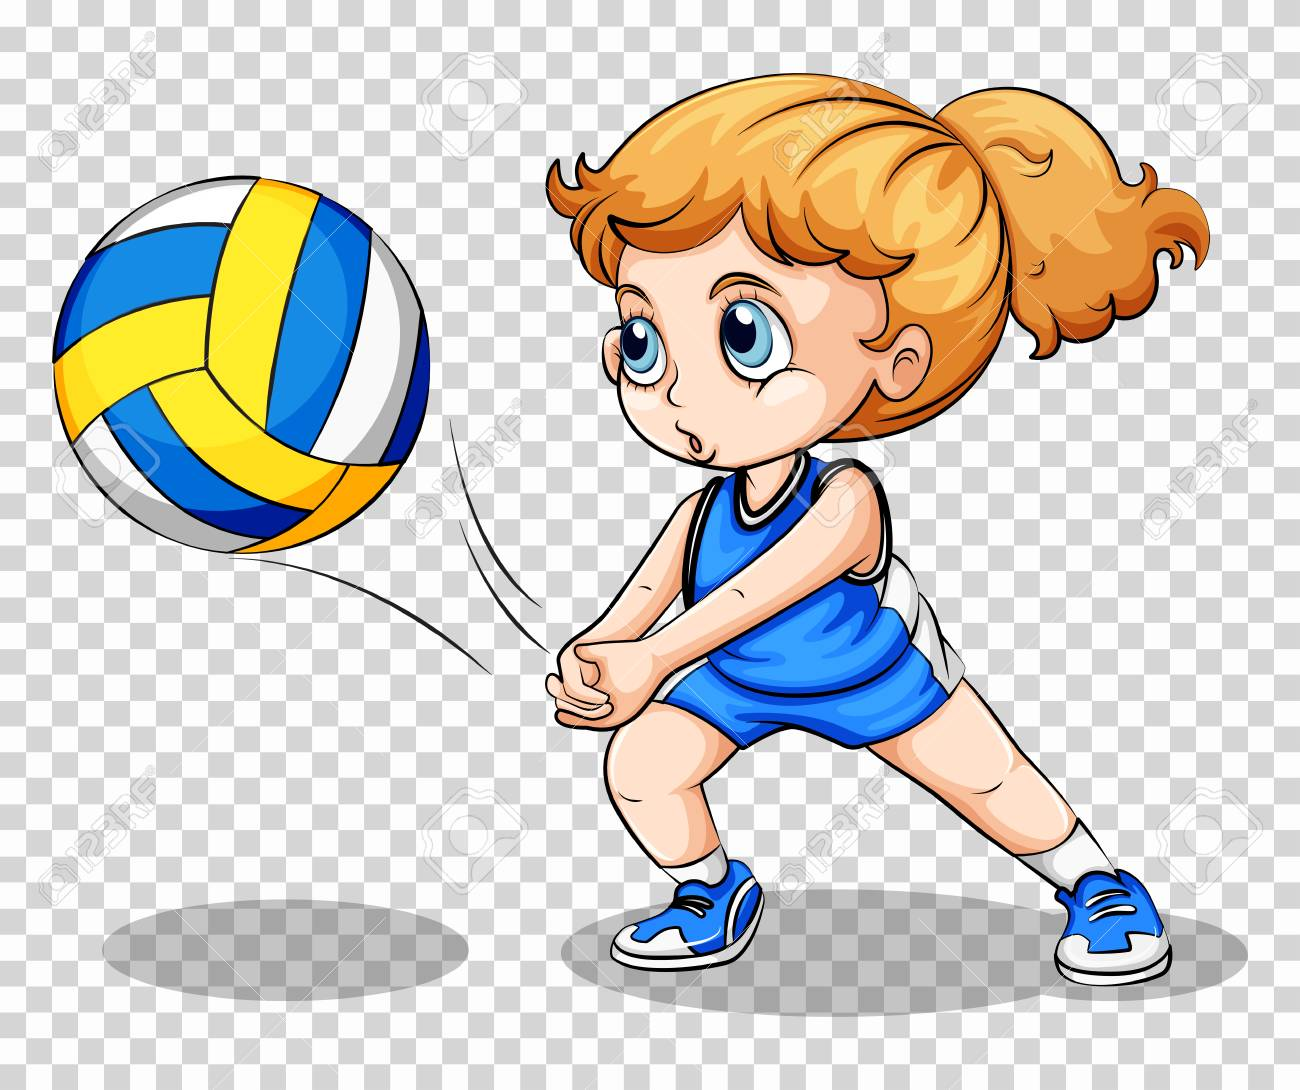 Volleyball player on transparent background illustration.